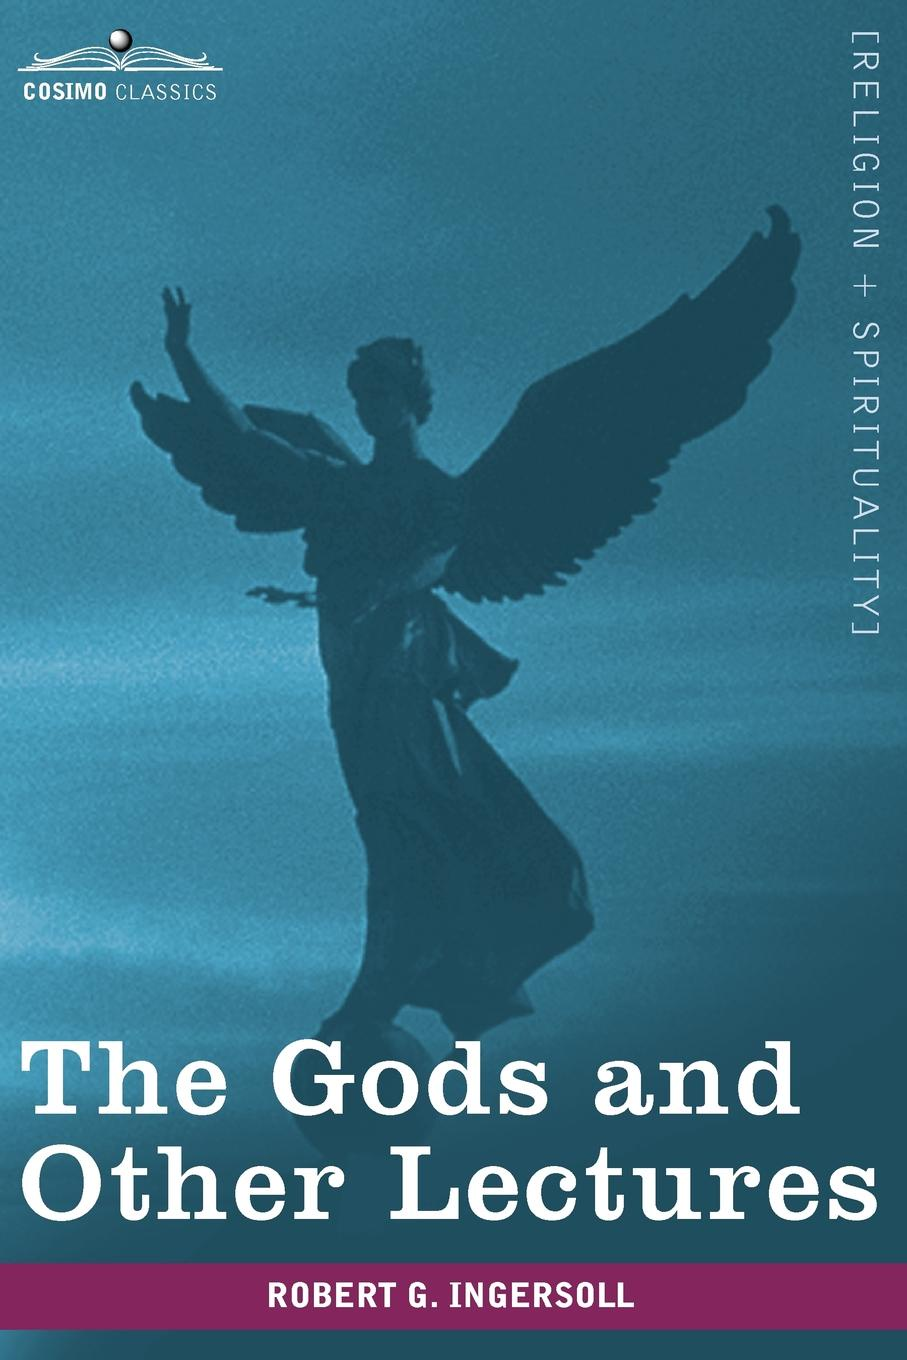 Robert Green Ingersoll The Gods and Other Lectures robert green ingersoll the works of robert g ingersoll v 9